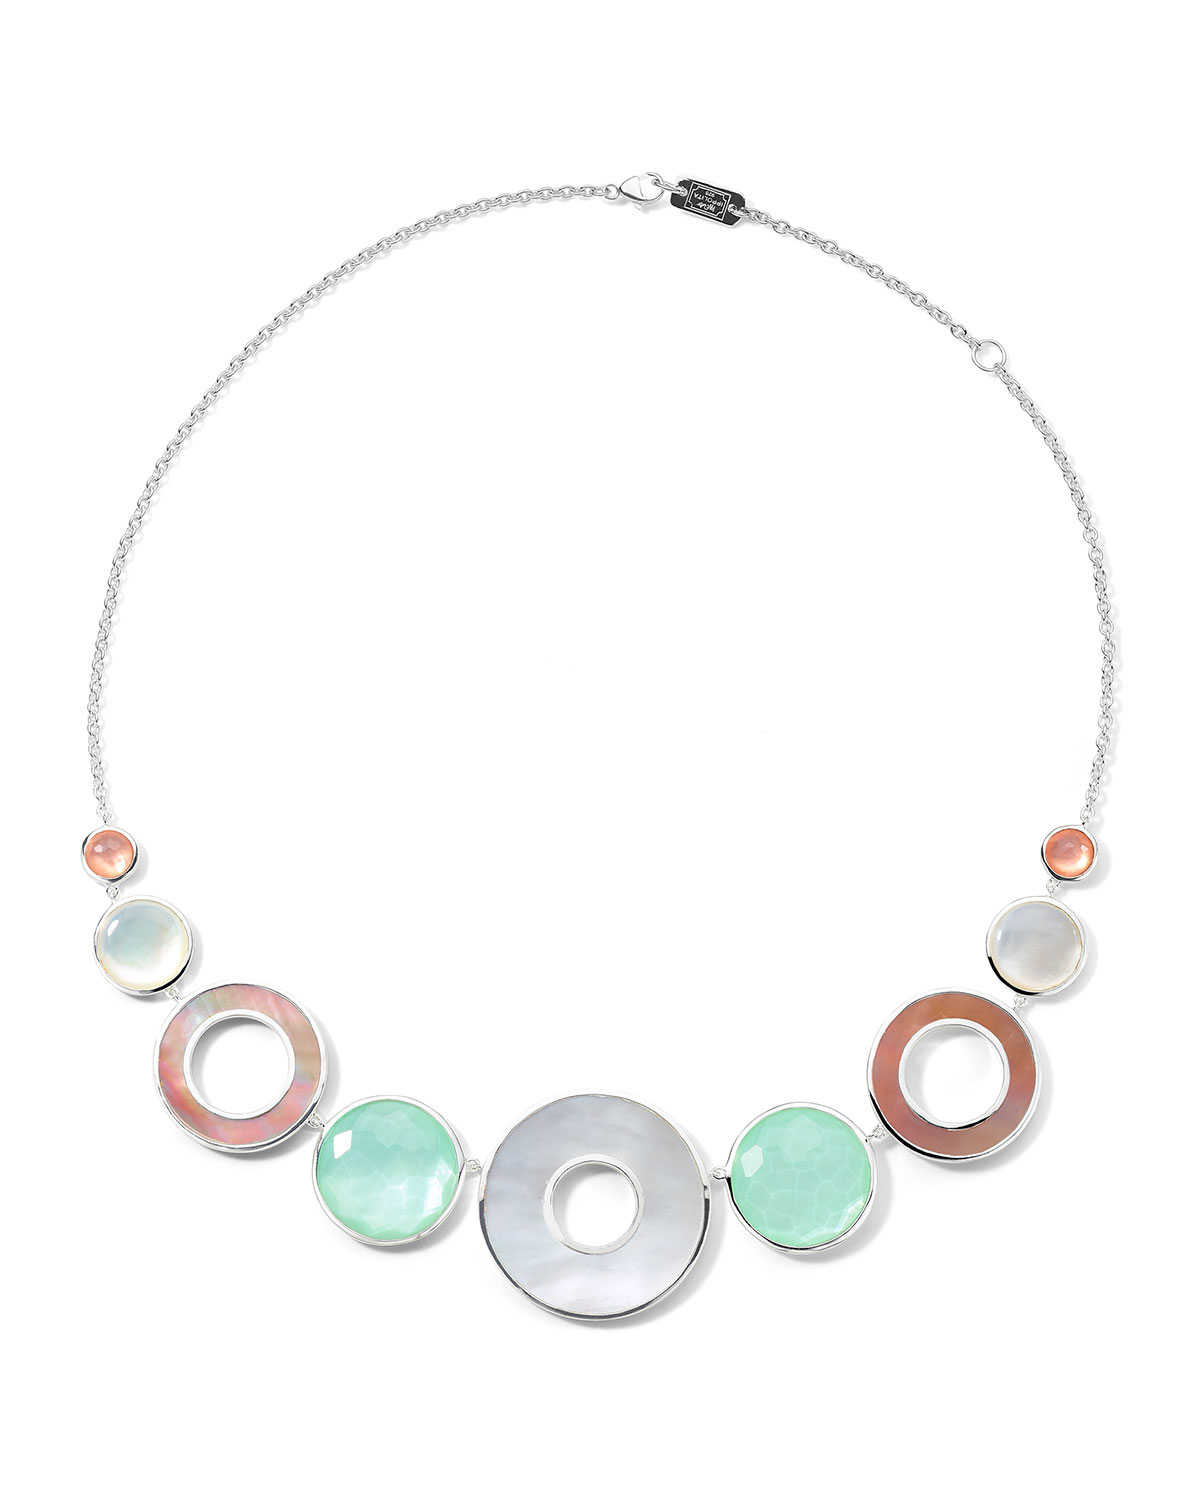 Ippolita WONDERLAND 9-STONE COLLAR NECKLACE IN SAGUARO